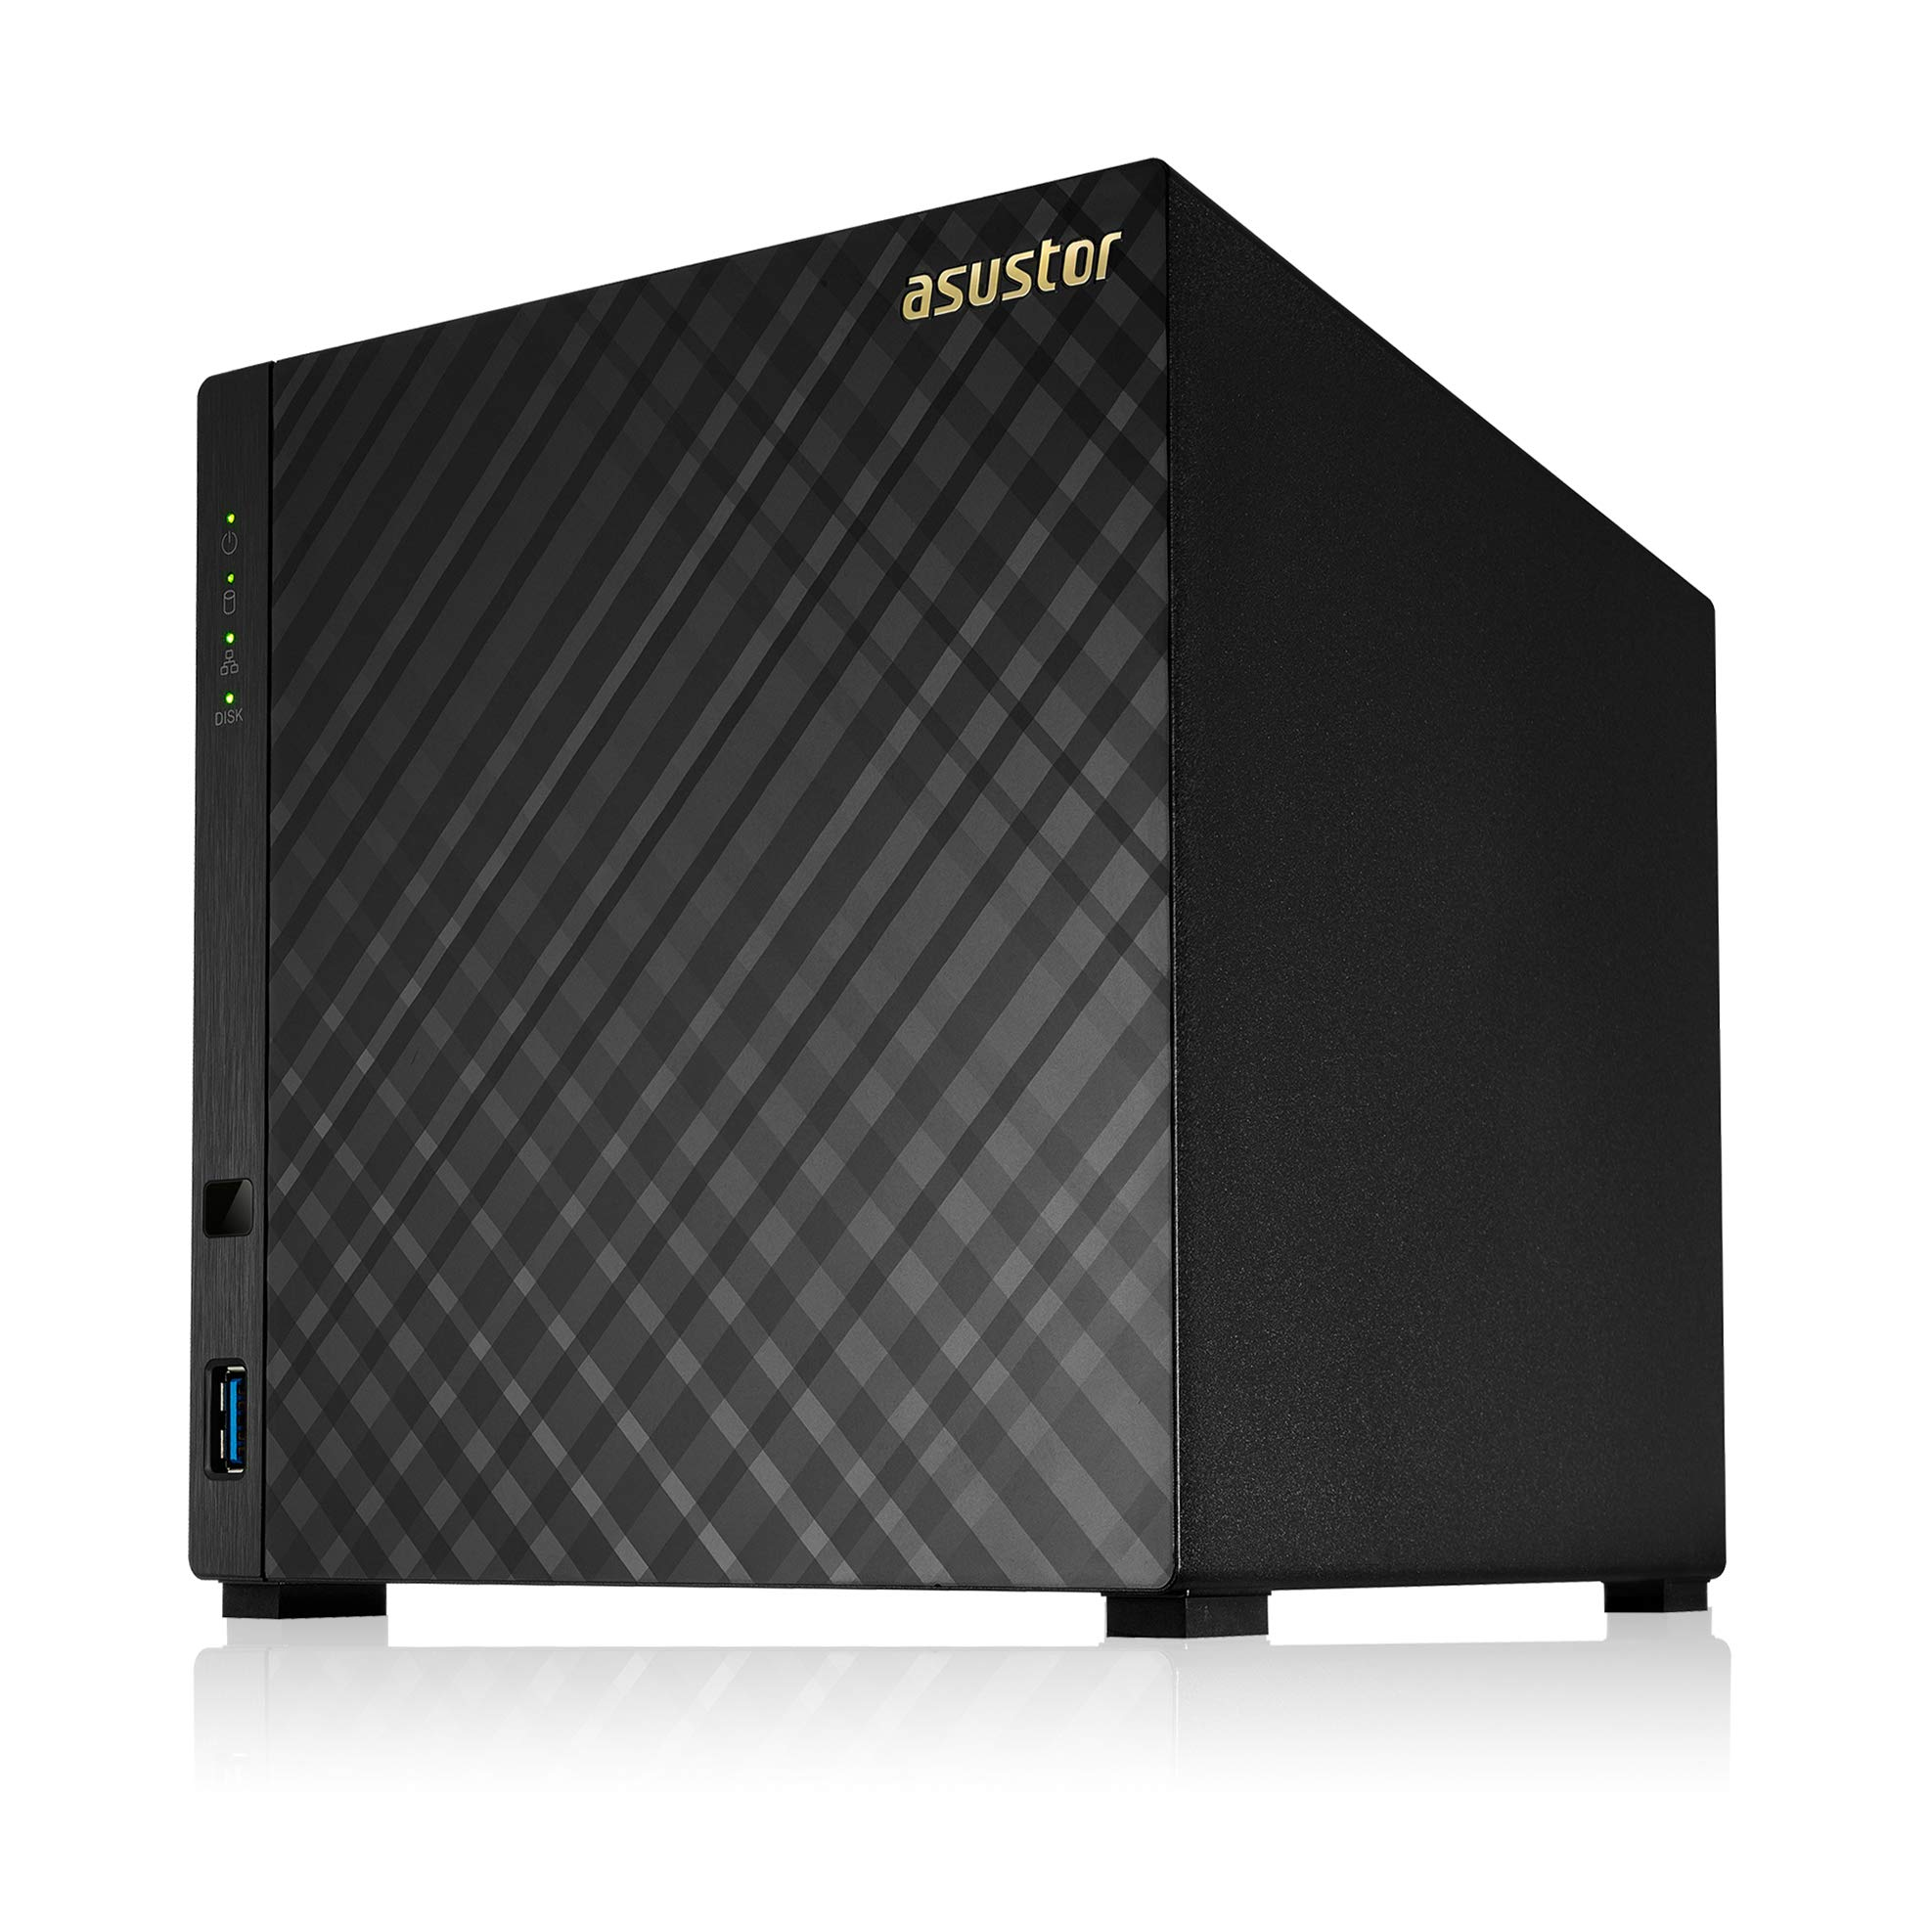 Asustor AS1004T v2, Marvell Armada 1.6GHz Dual-Core, Personal Cloud NAS (4 Bay Diskless NAS)